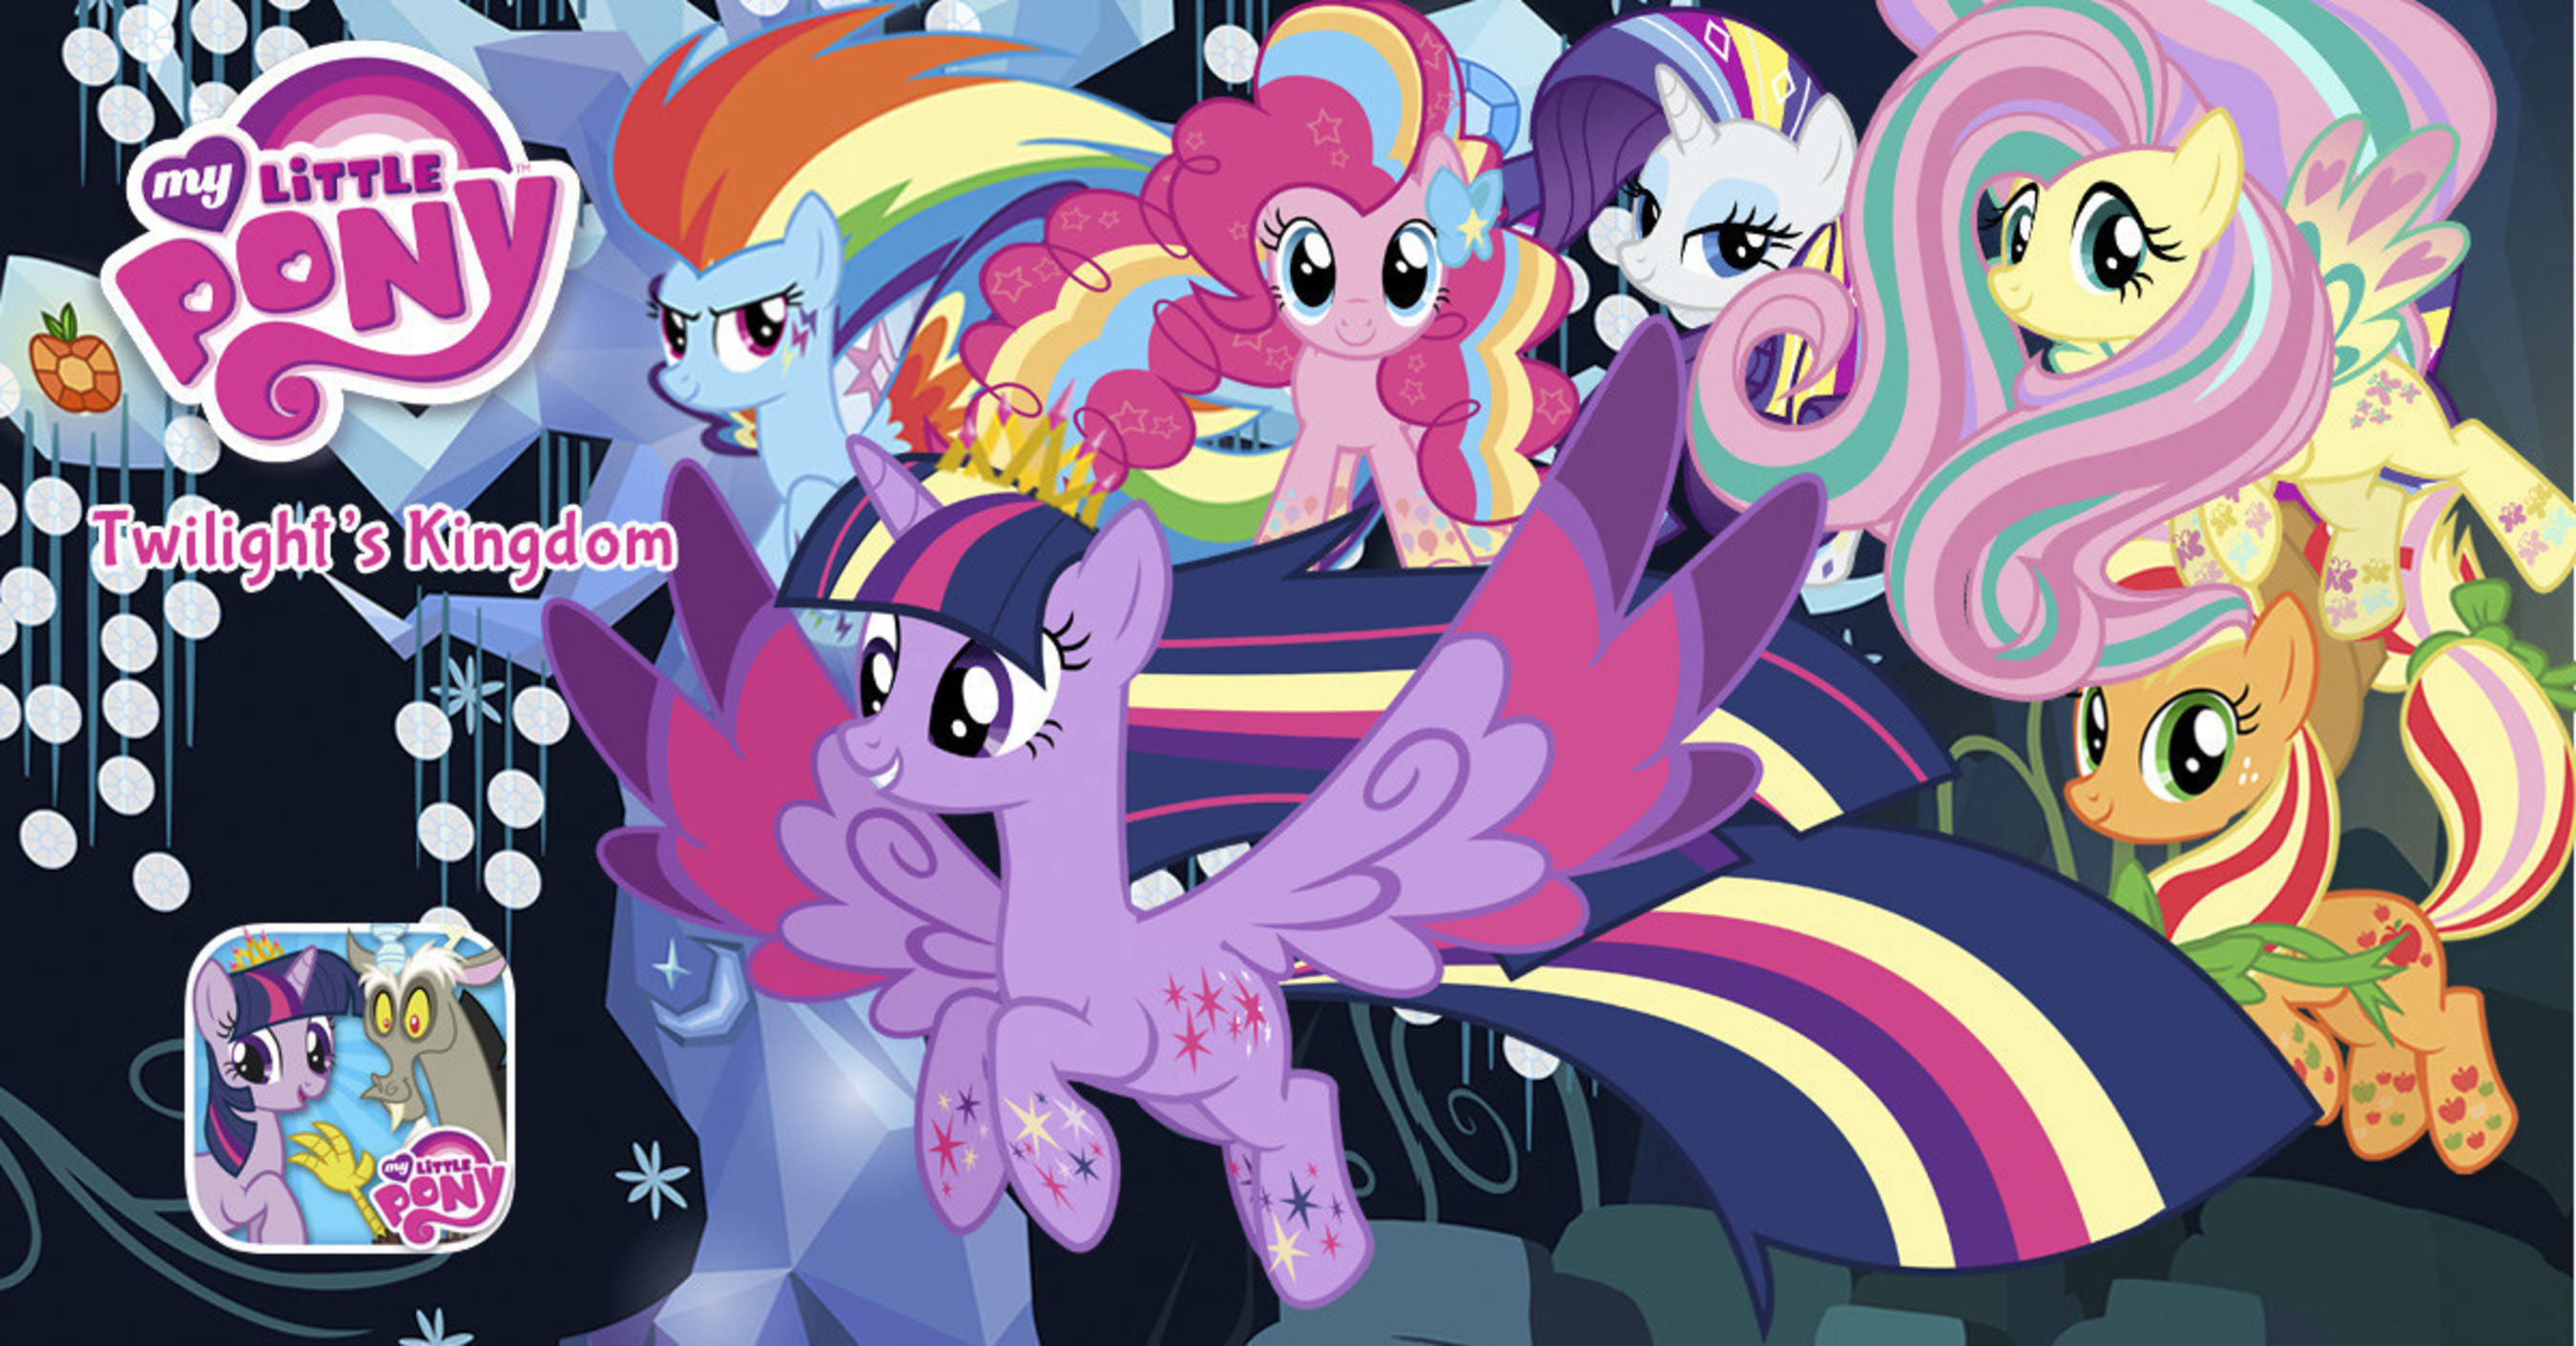 EQUESTRIA's Newest Princess Saves the Day in First Ever MY LITTLE PONY Deluxe Storybook App From